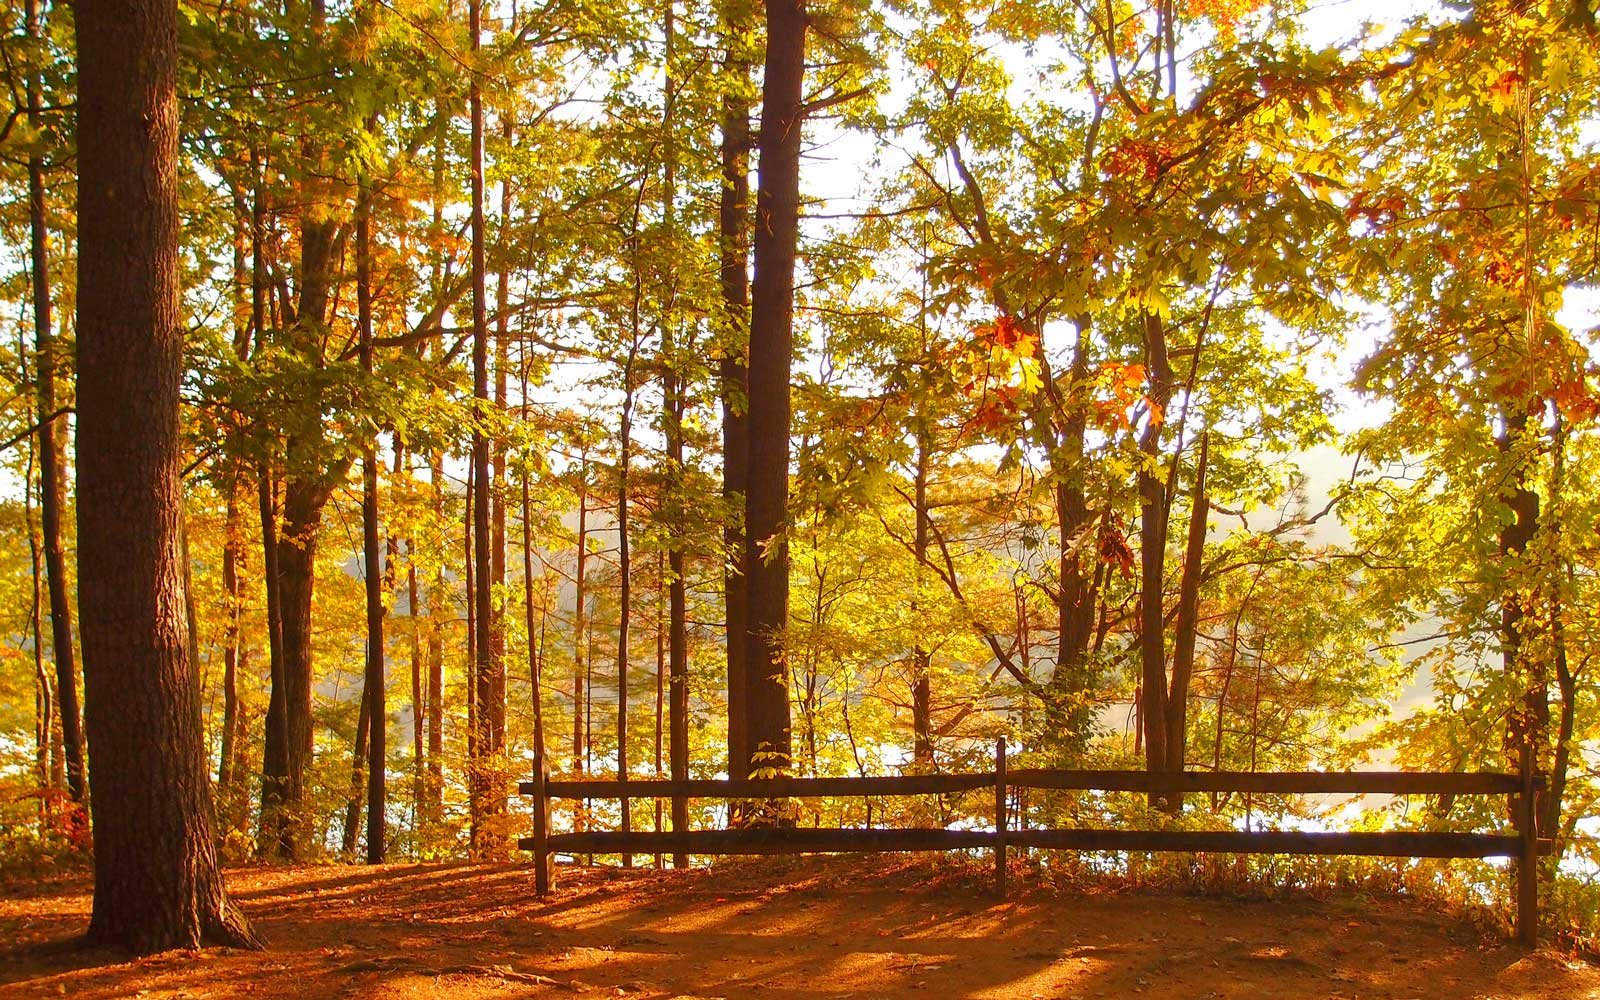 Camping can be a great way to admire colorful fall foliage.